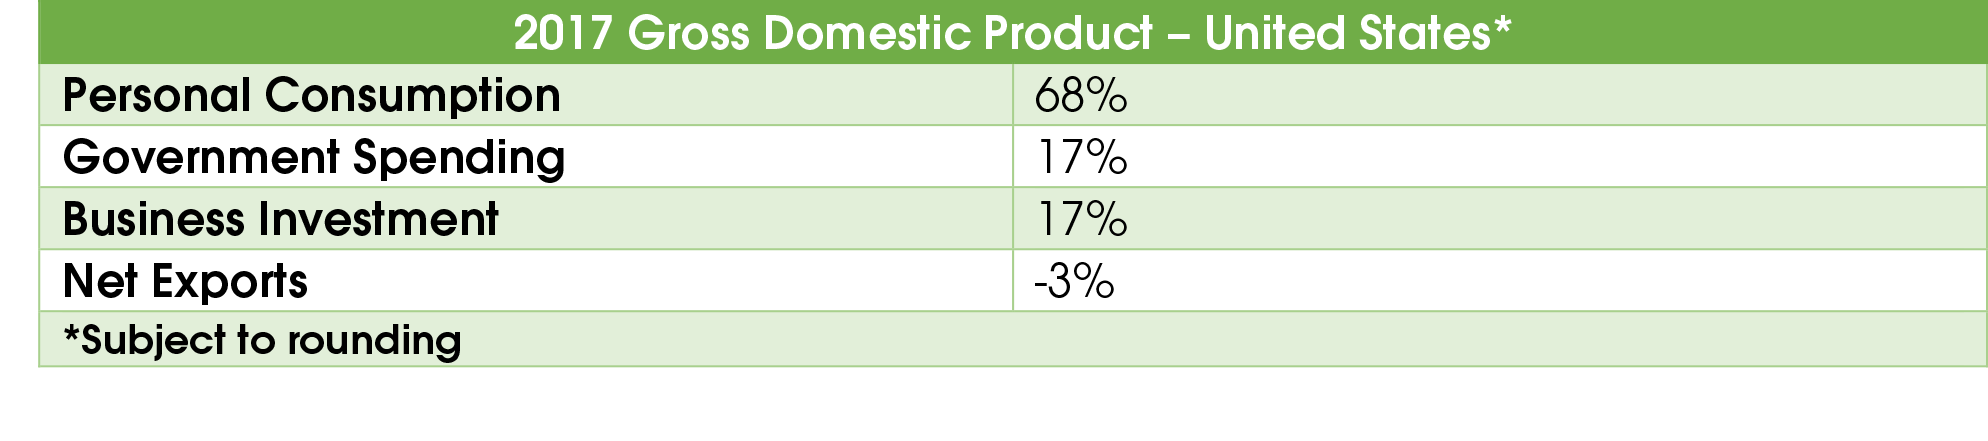 2017 Gross Domestic Product.png